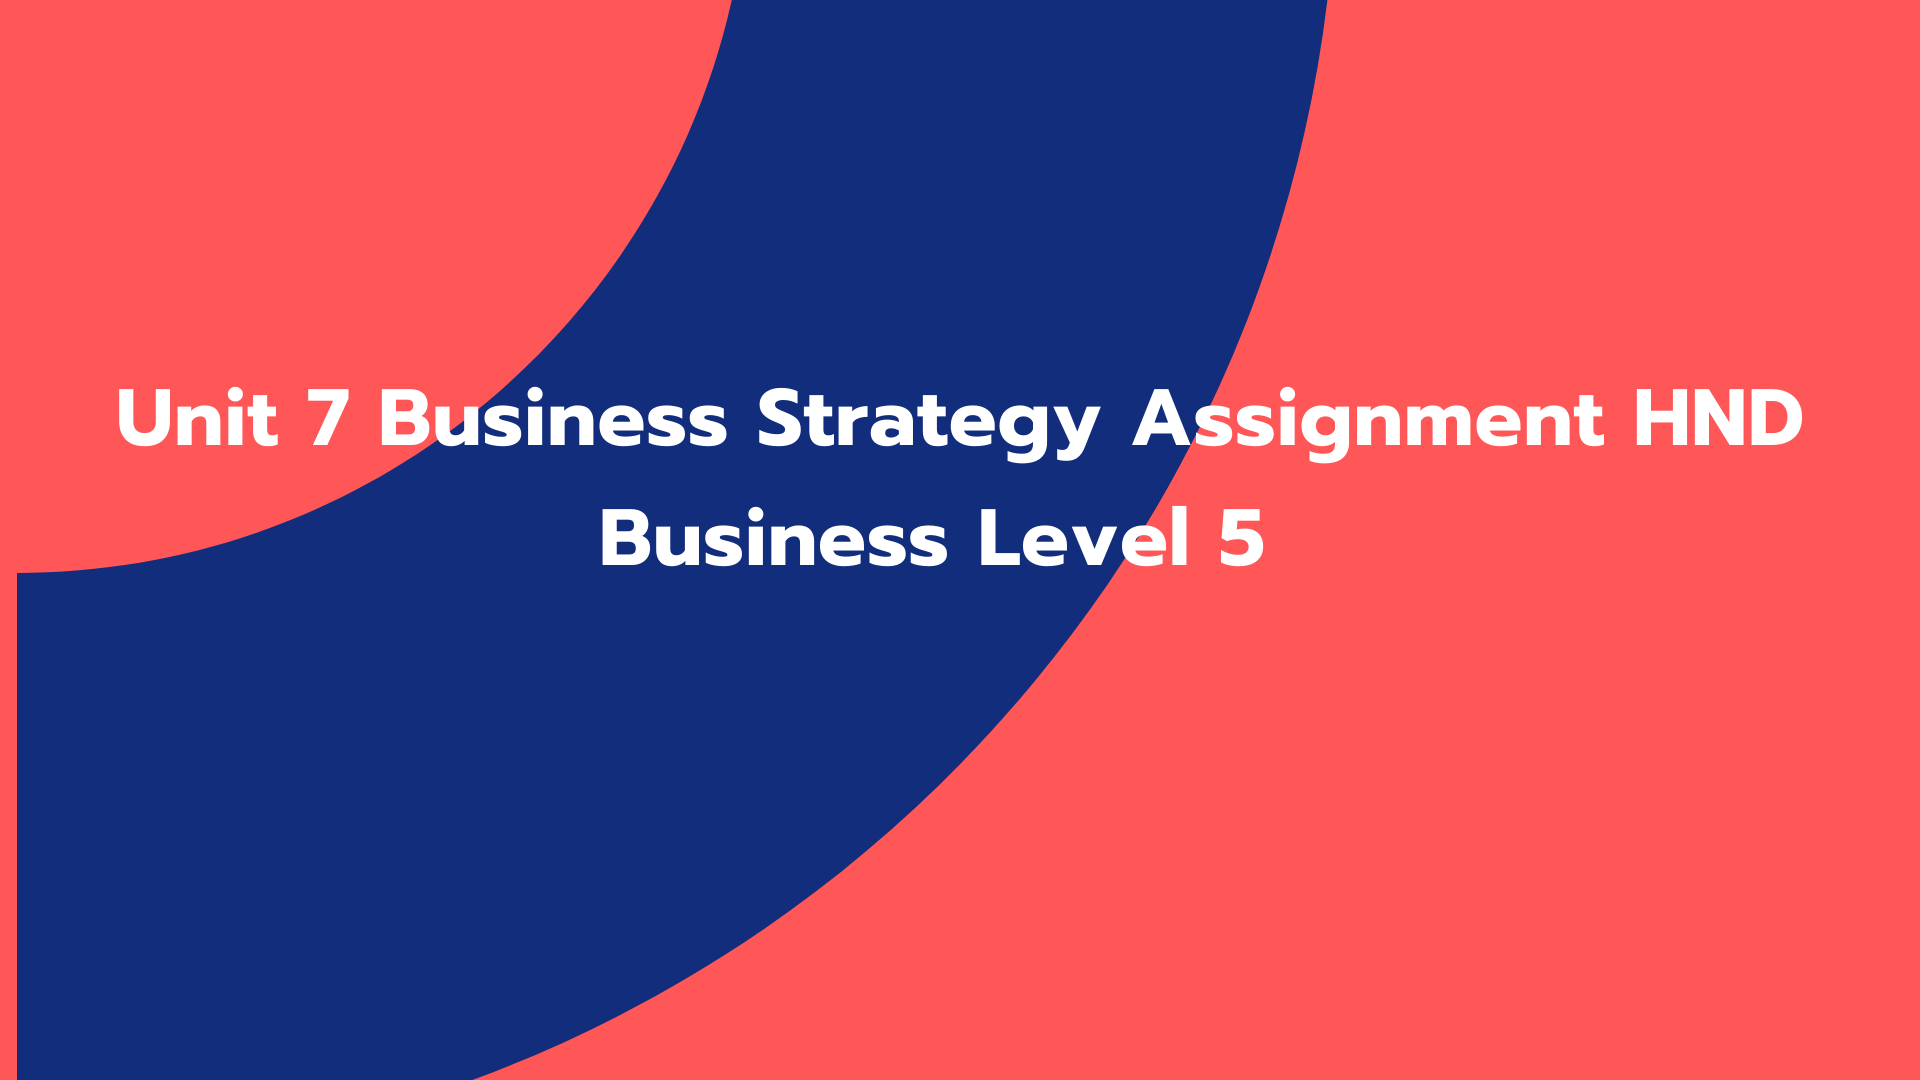 Unit 7 Business Strategy Assignment HND Business Level 5